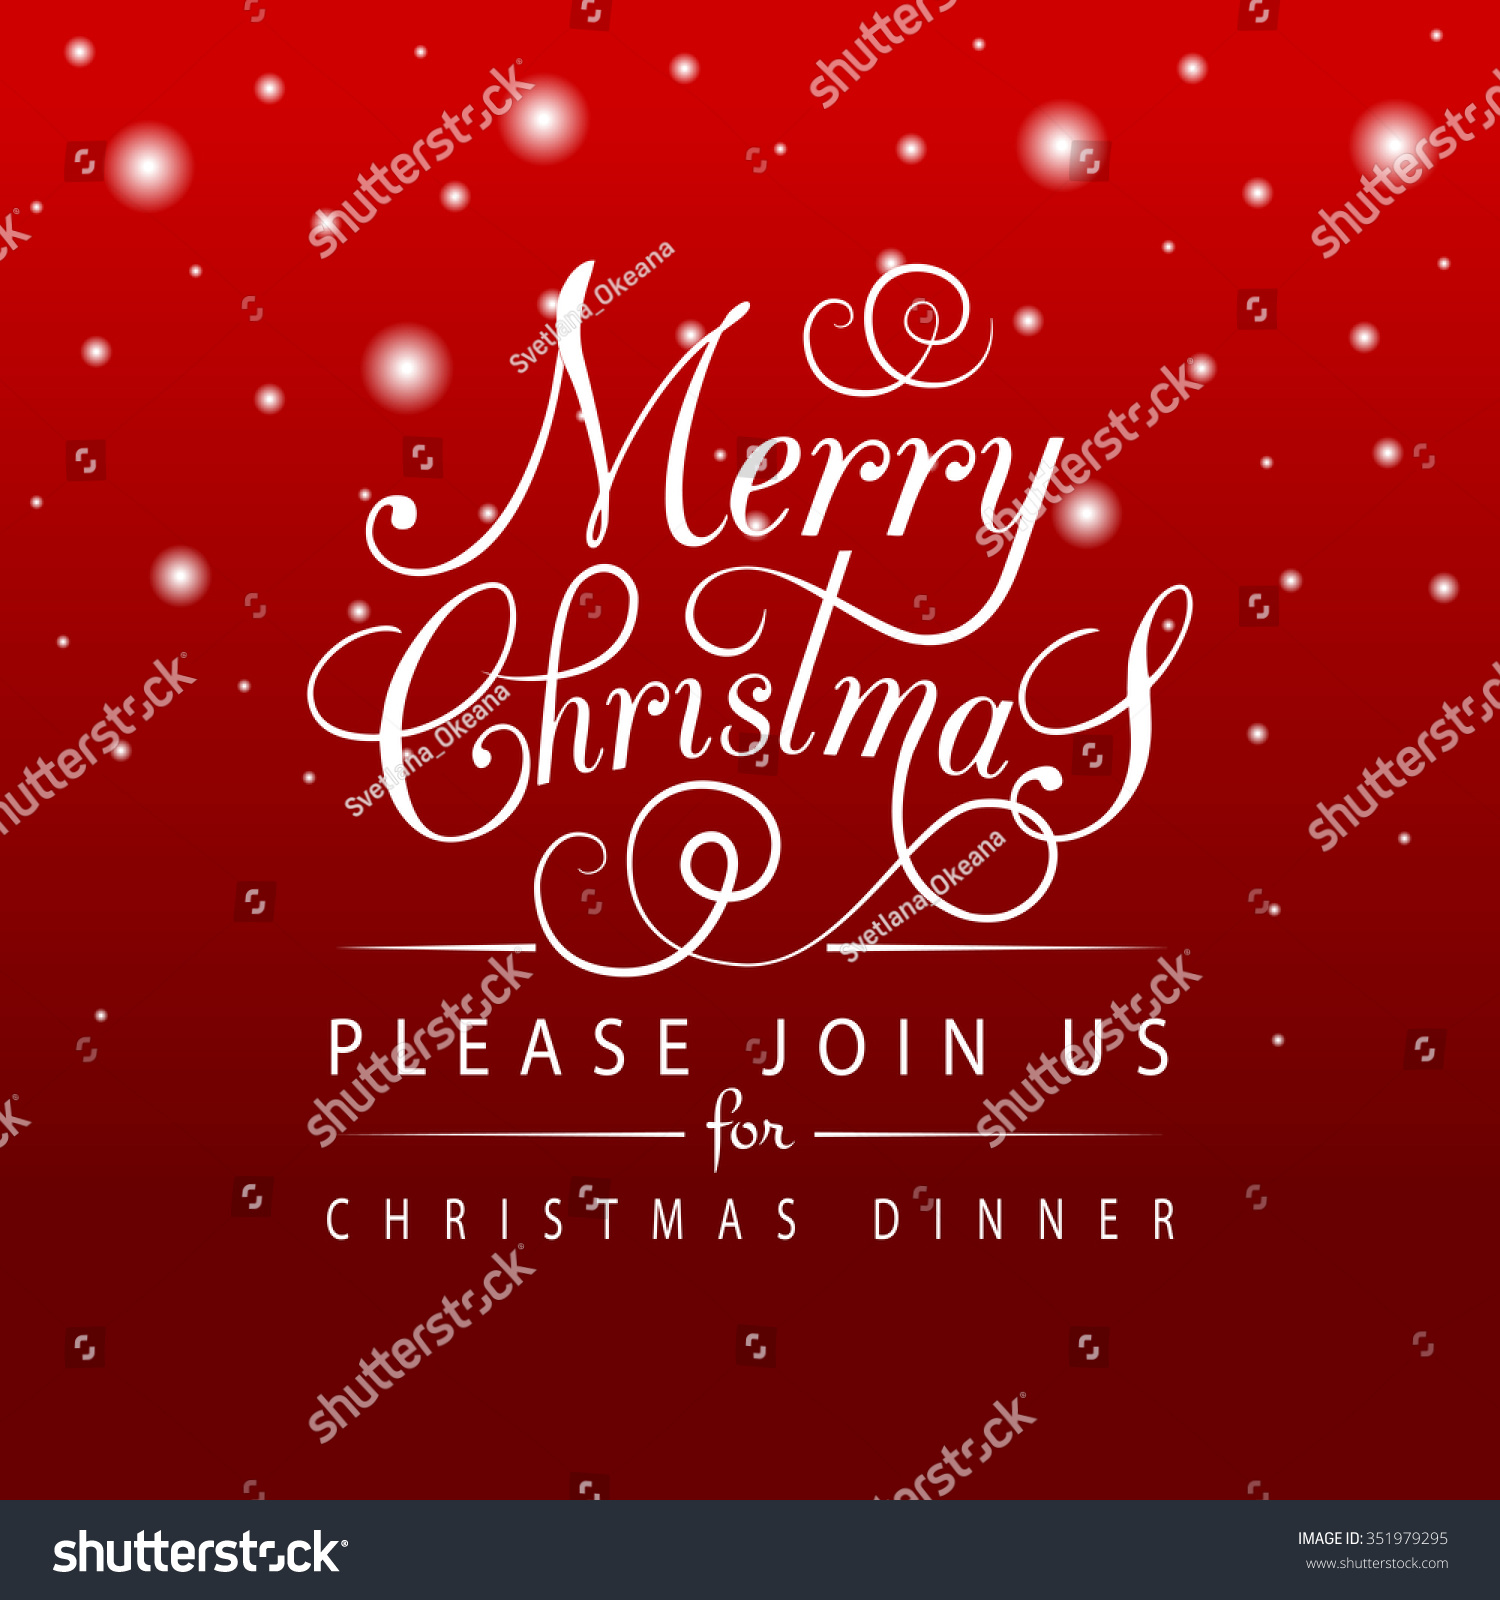 Merry Christmas Happy Holidays Greeting Card Stock Vector 351979295